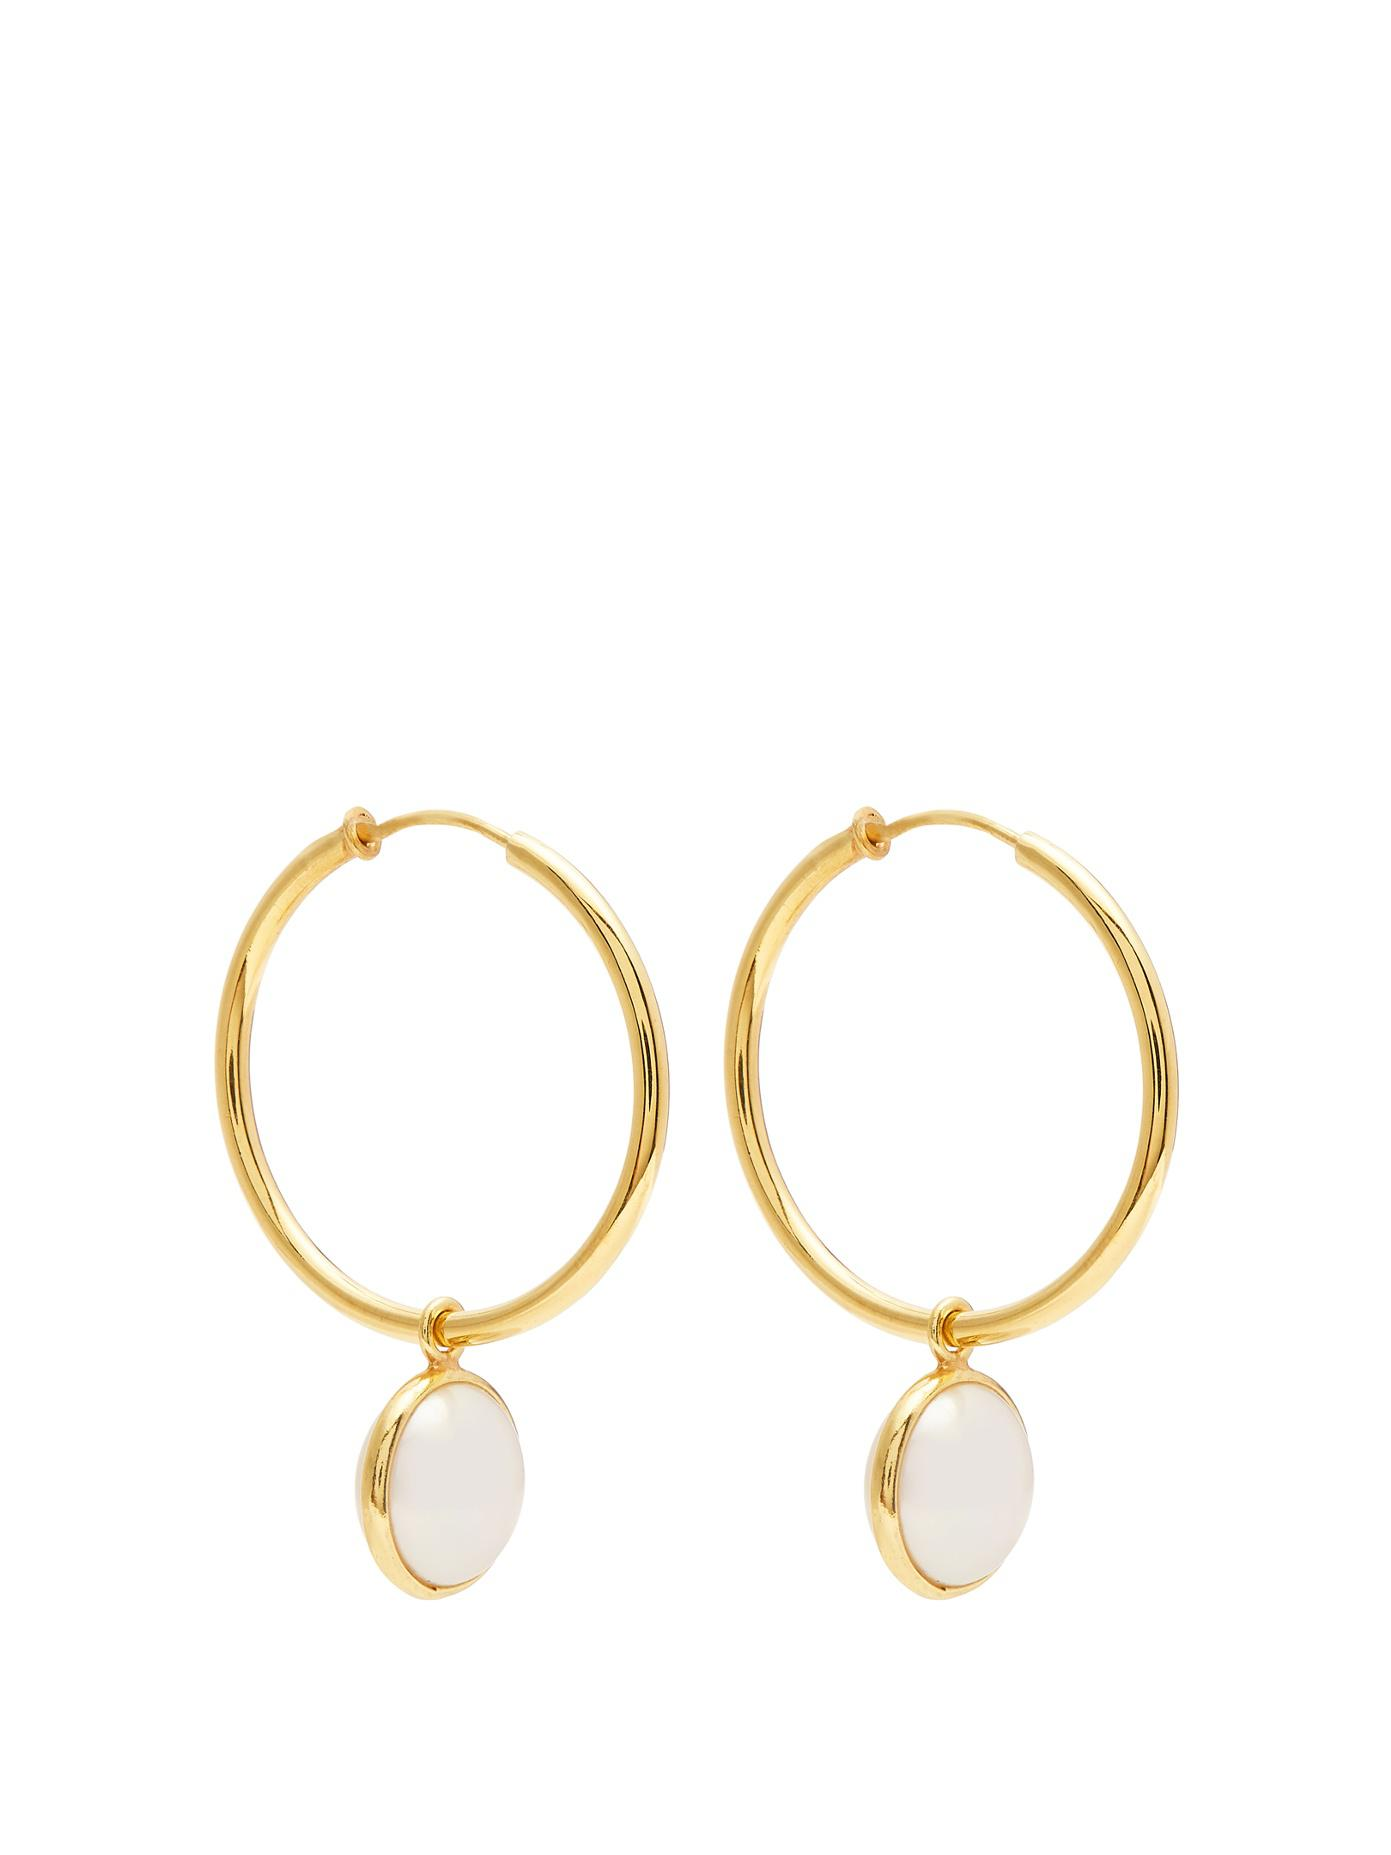 Theodora Warre Pearl-embellished gold-plated hoop earrings vTDPf